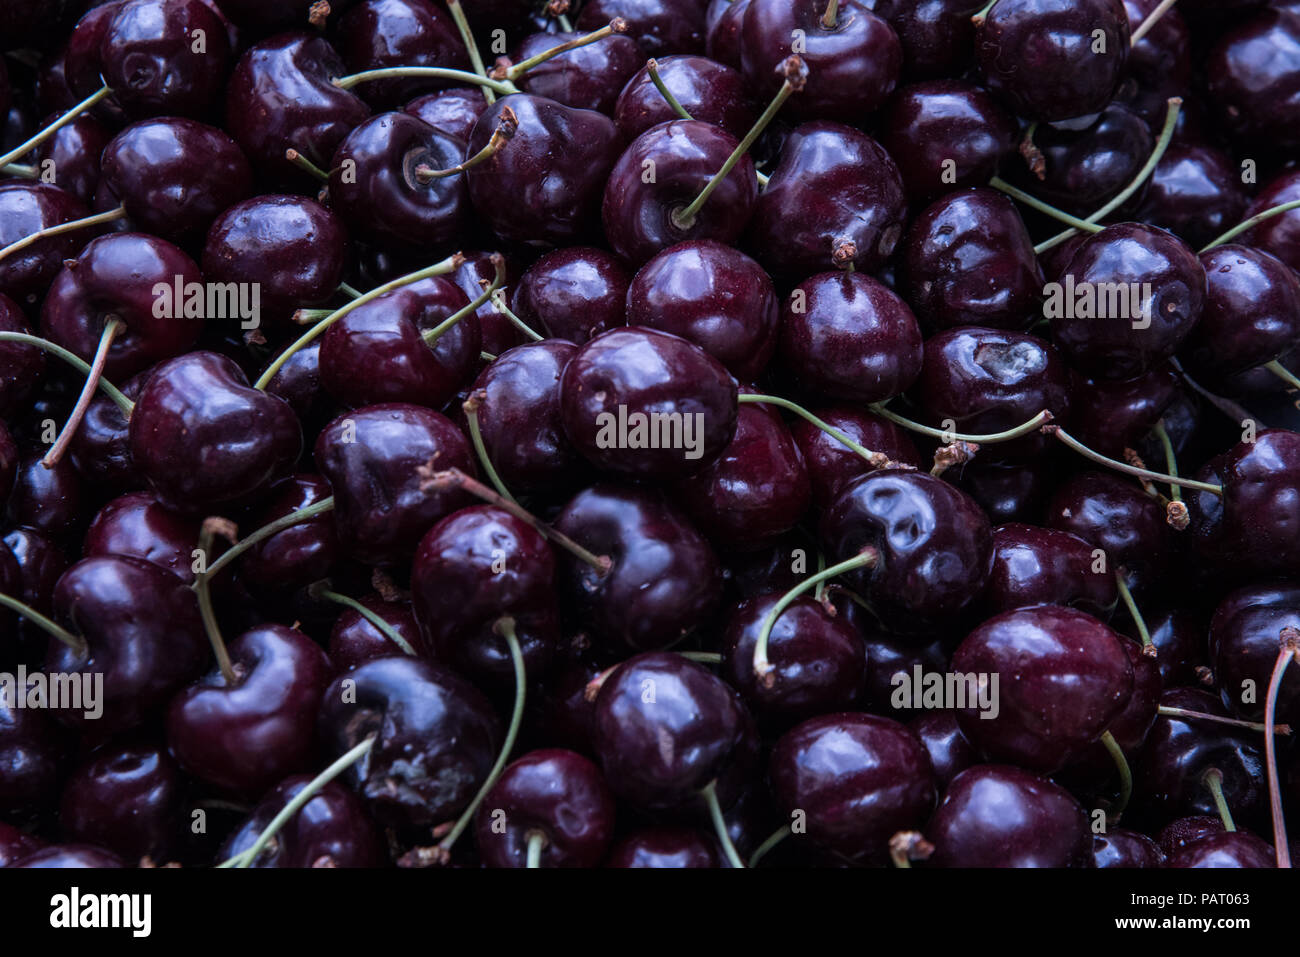 A Large Amount Of Fresh Cherries In Food Market Pile